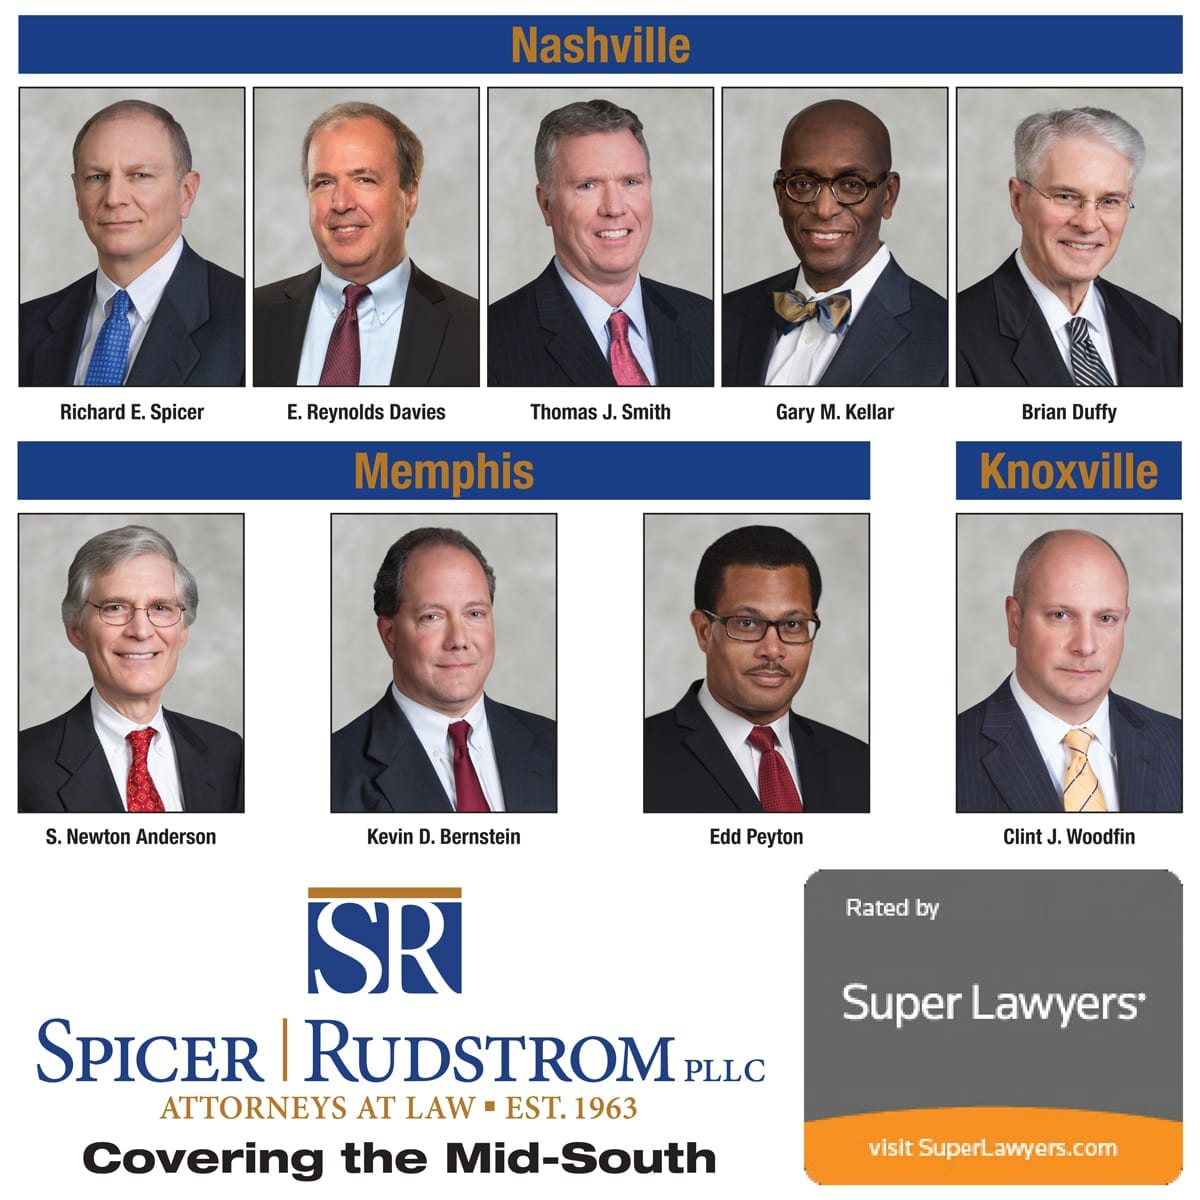 Spicer Rudstrom, PLLC Super Lawyers